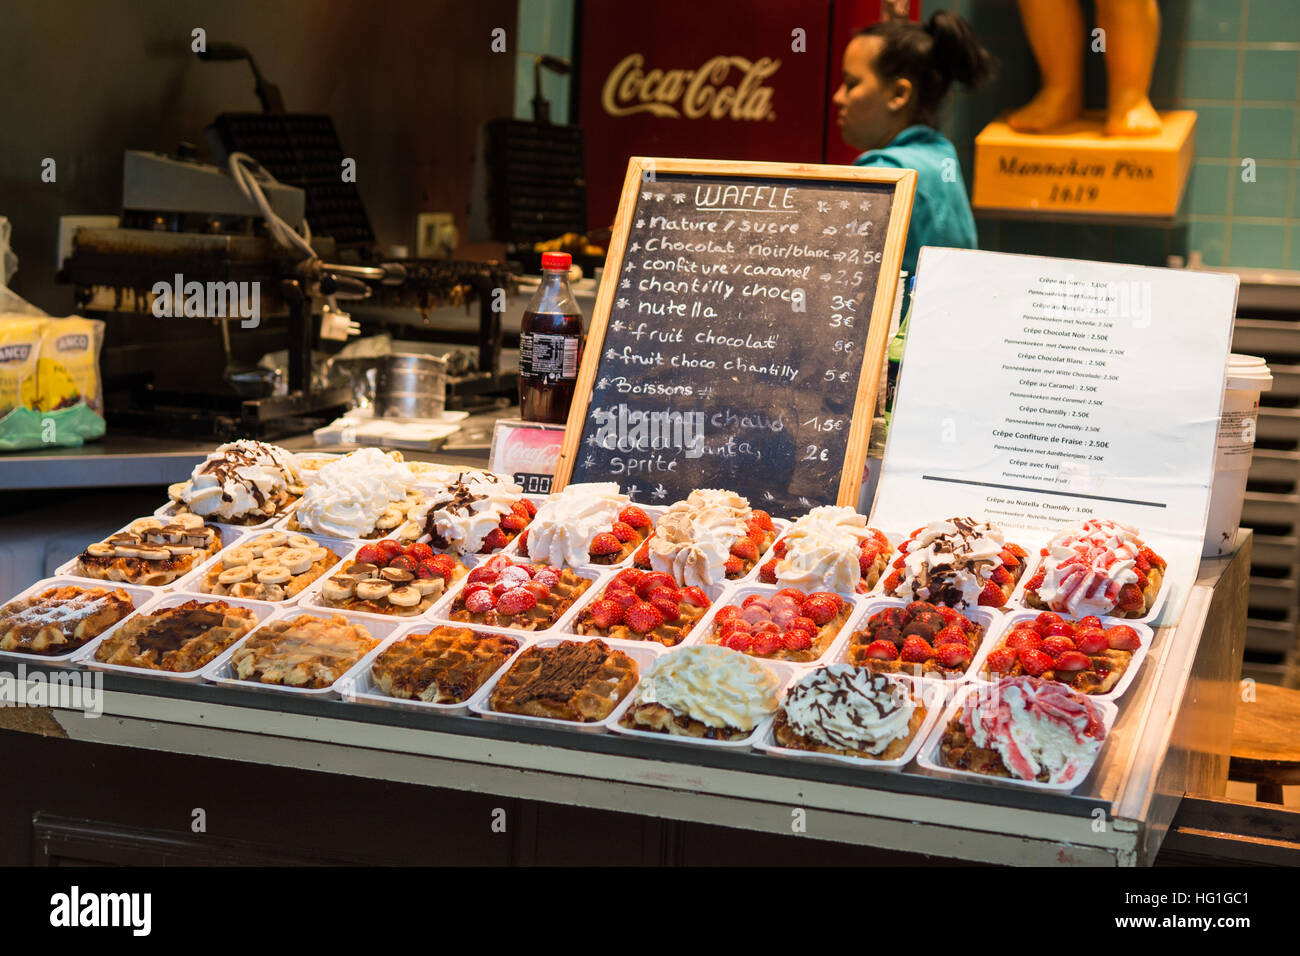 Belgian waffles with chantilly cream chocolate and strawberries on sale in Brussels, Belgium - Stock Image